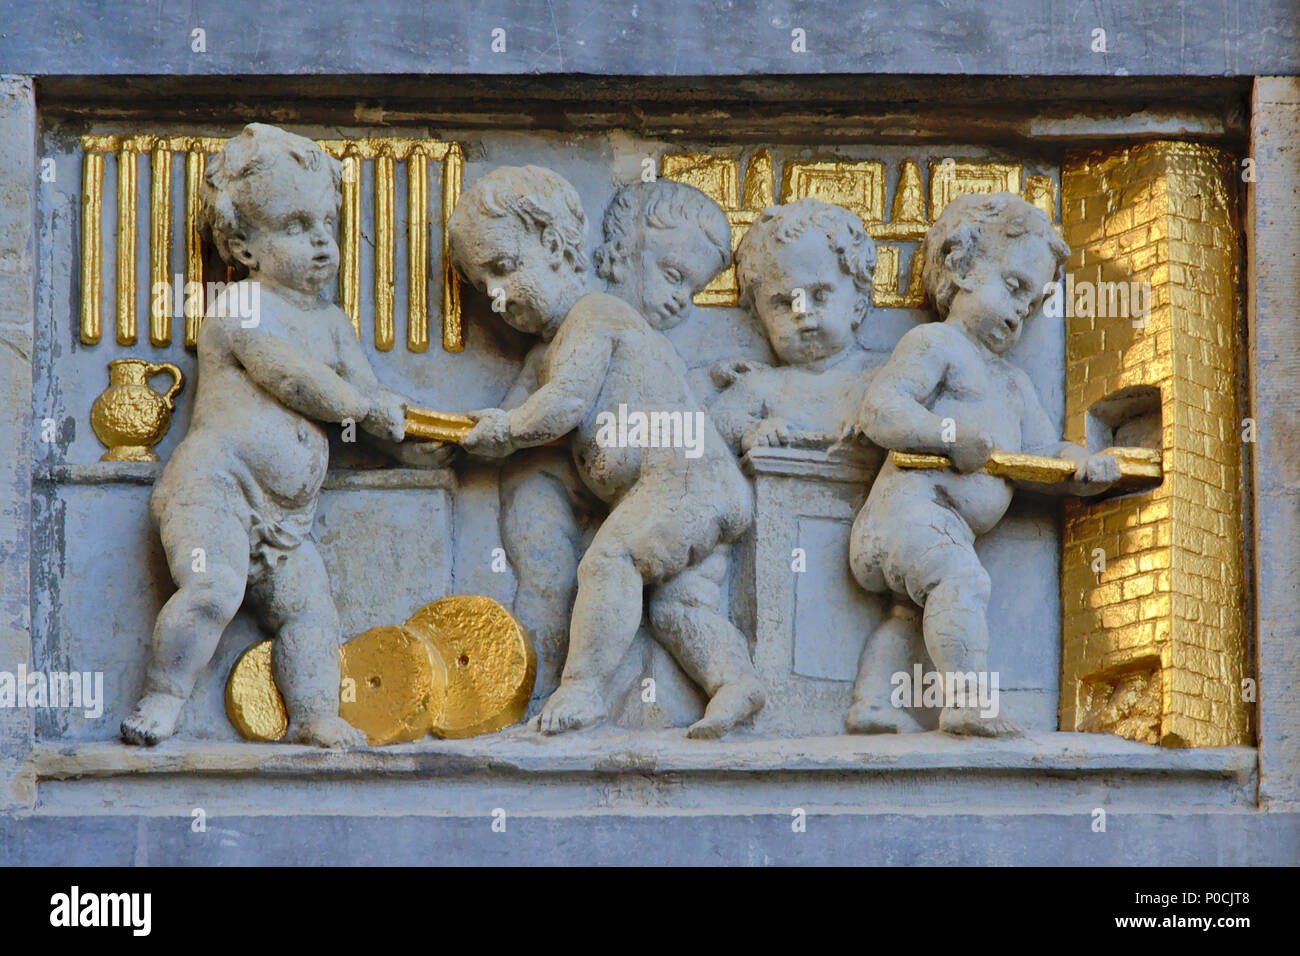 Bas relief in stone and gold of cherubs at work, found on the facade of a medieval house on Brussels Grand Place square - Stock Image